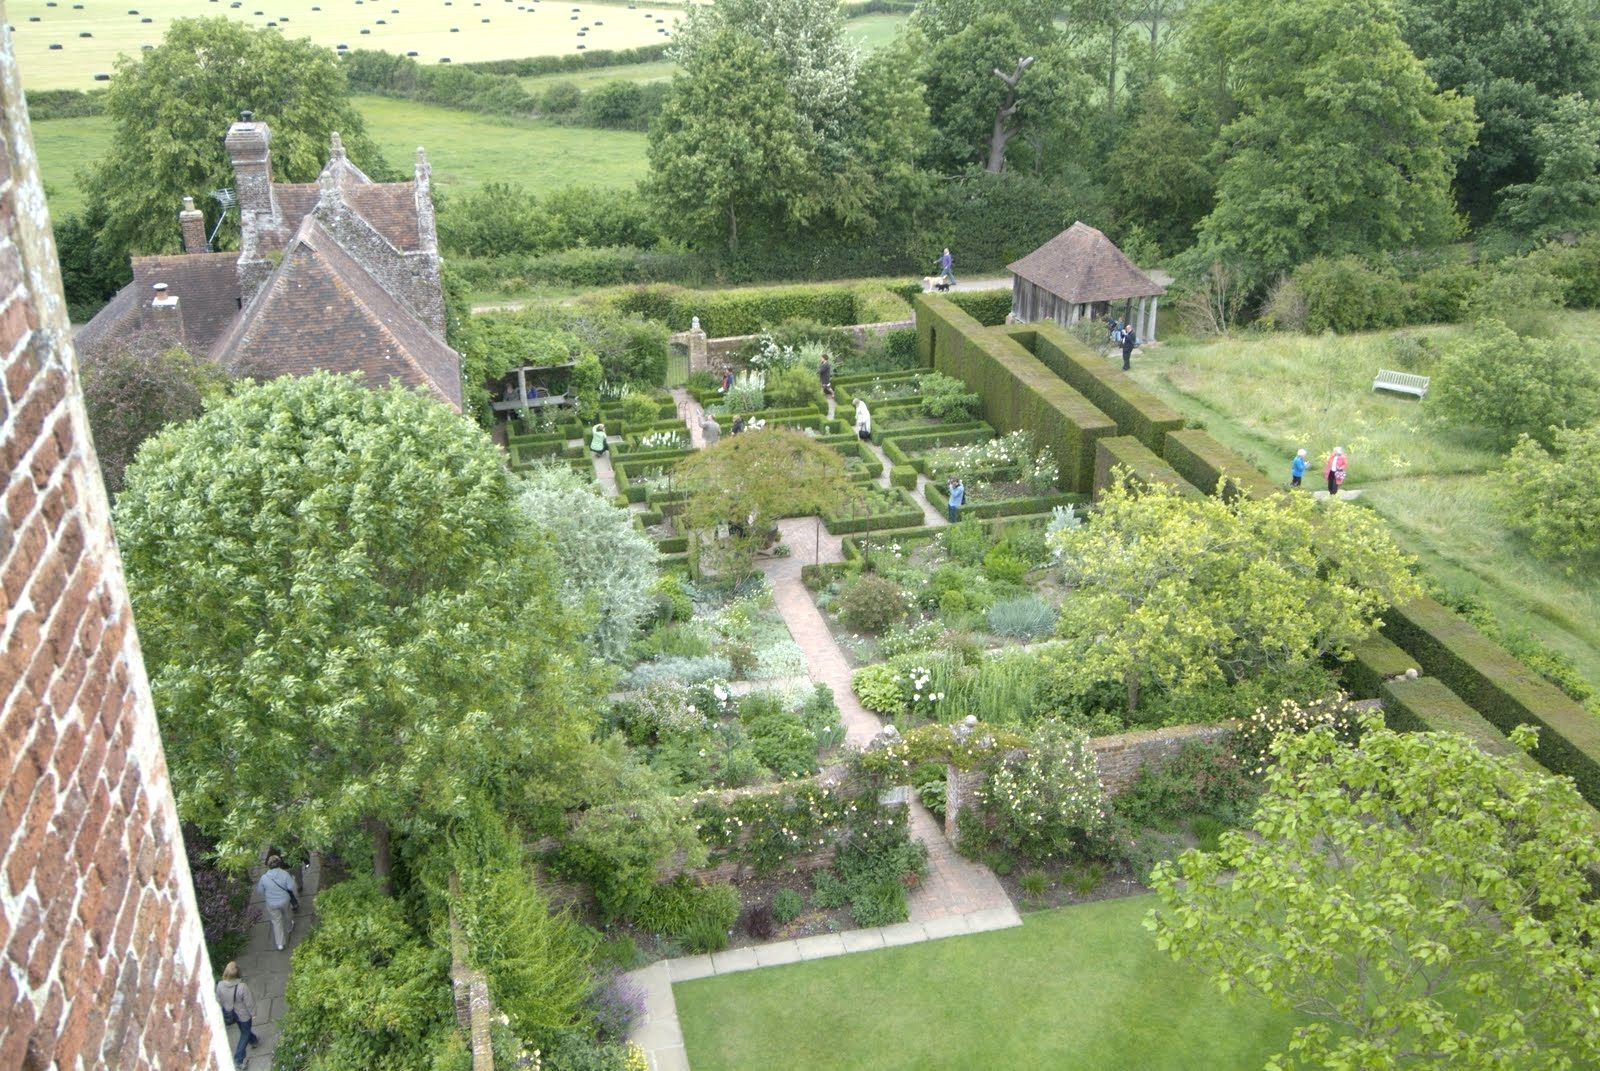 English Garden Design english garden for all seasons winner daily mail national garden competition English Garden Landscape Design Plans Landscape Design More